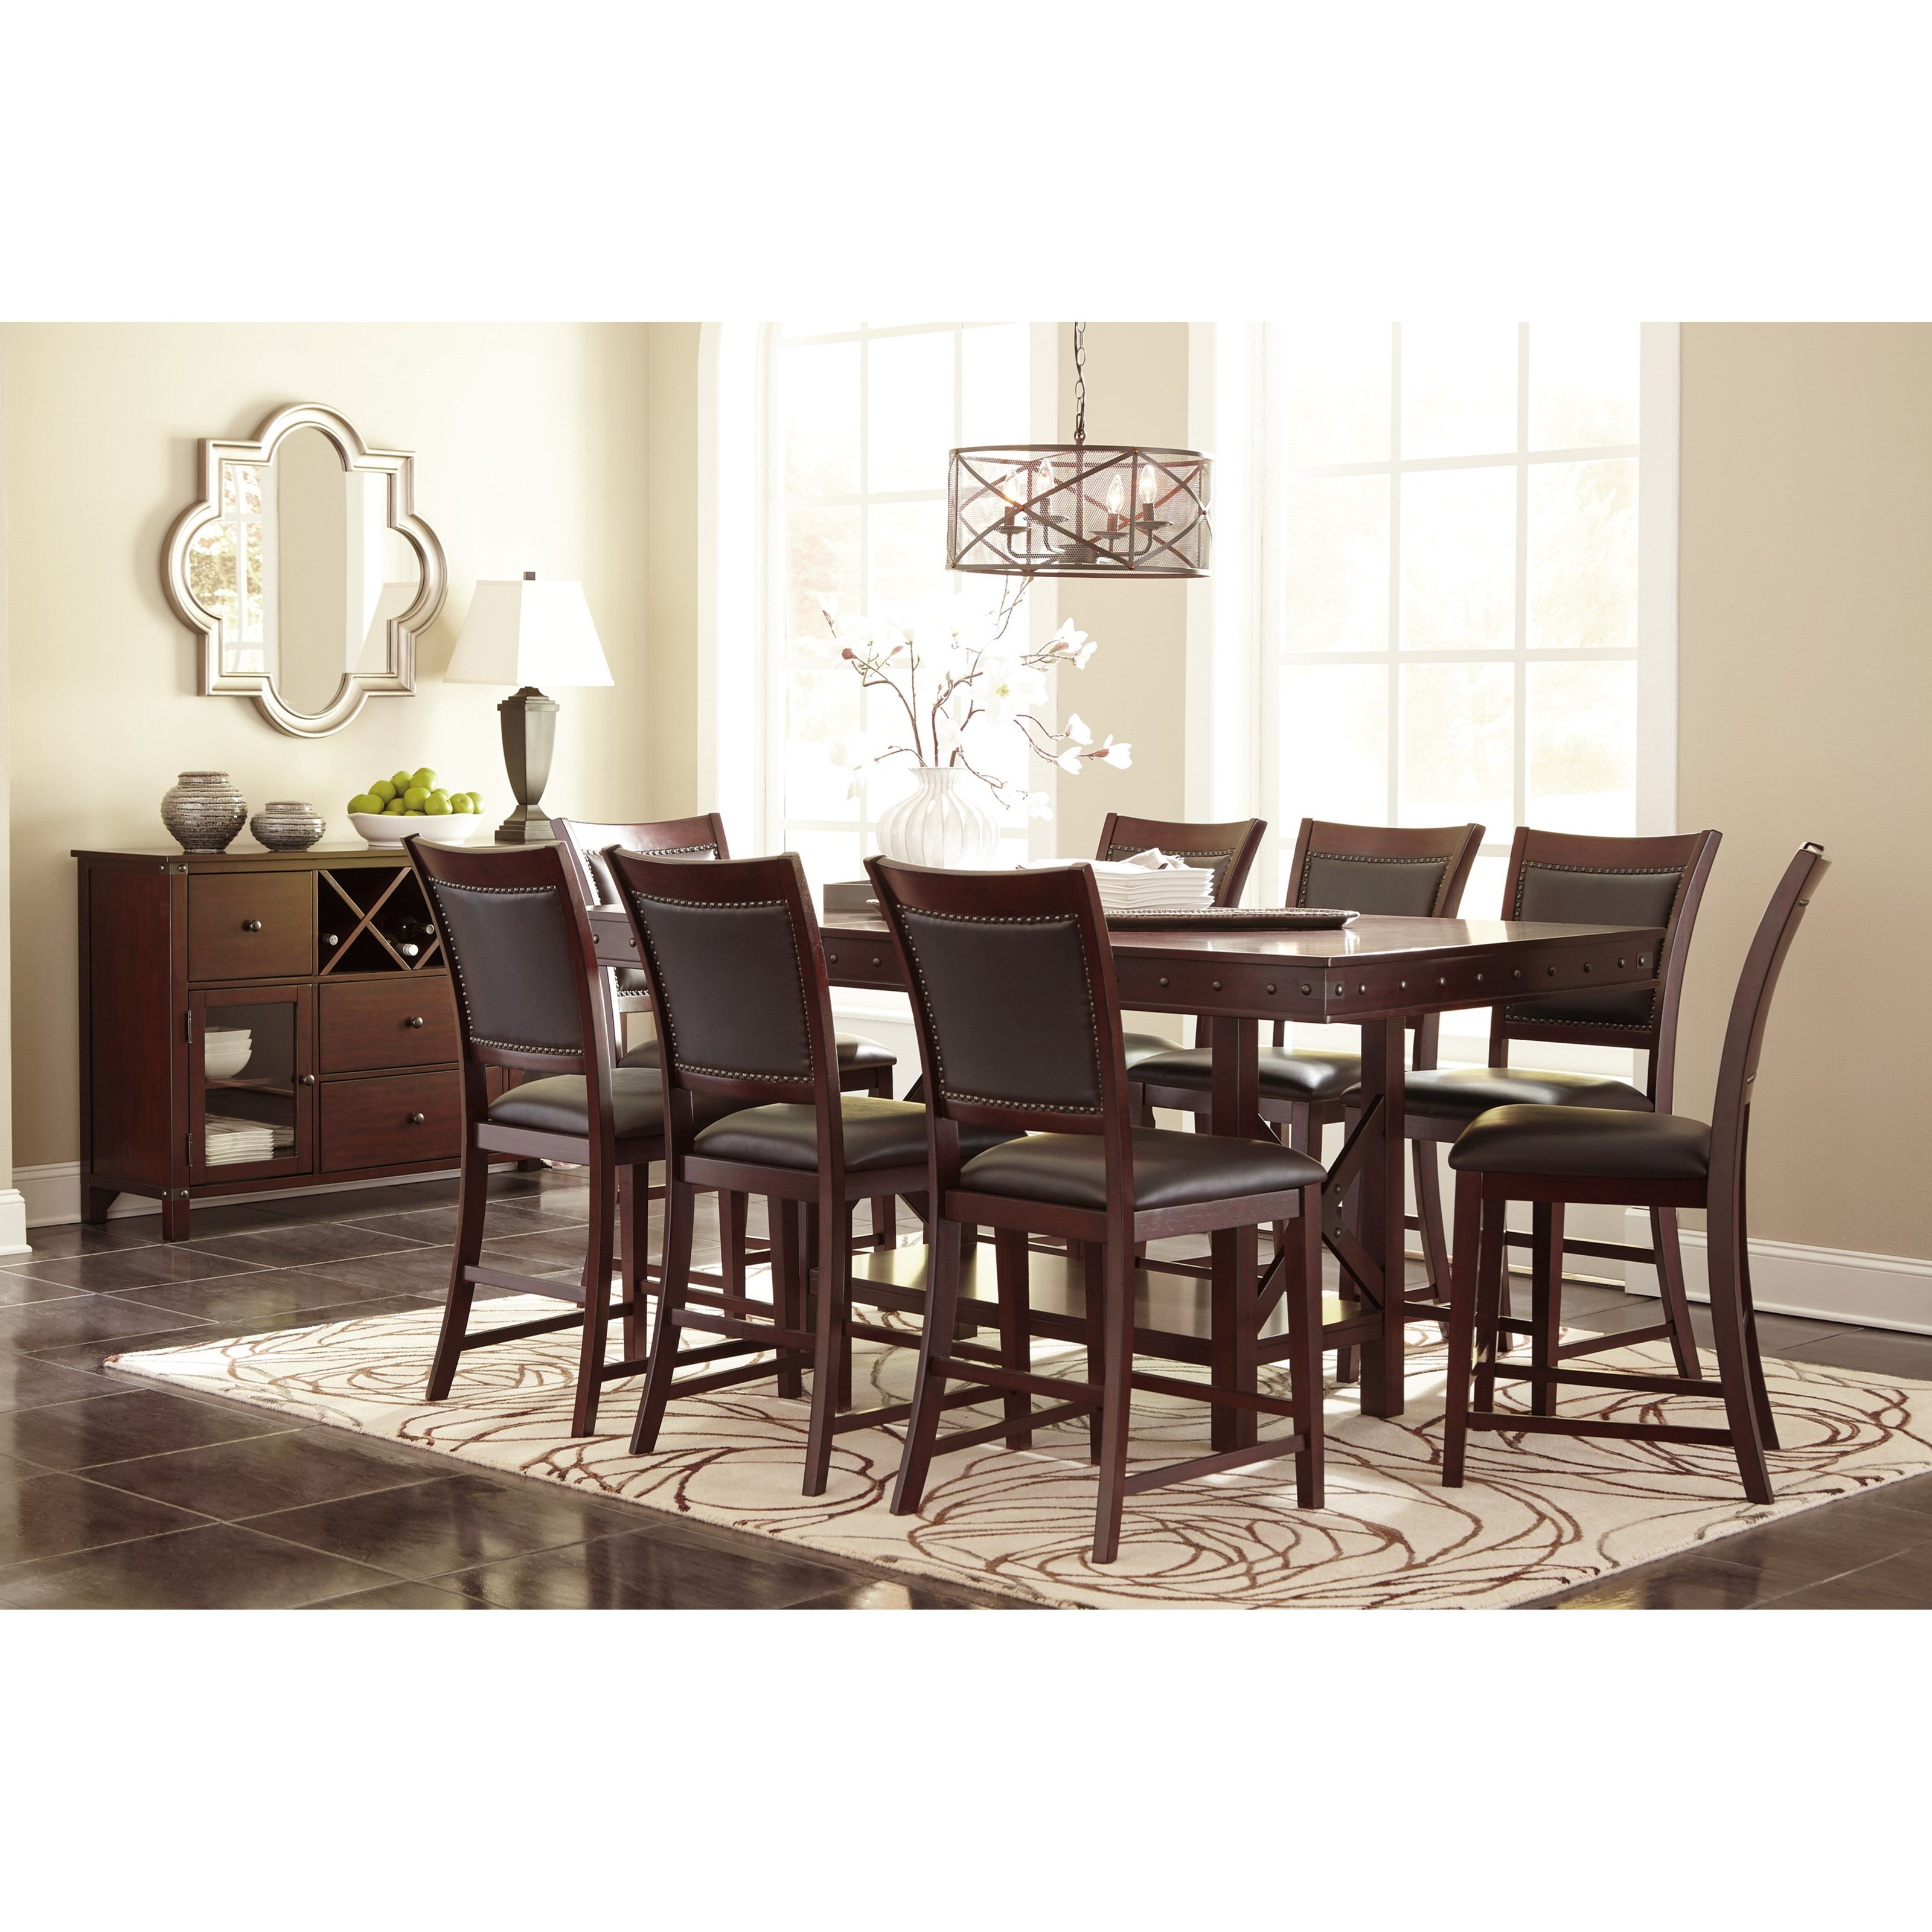 Signature Design By Ashley Collenburg Casual Dining Room Group Rife 39 S Home Furniture Casual